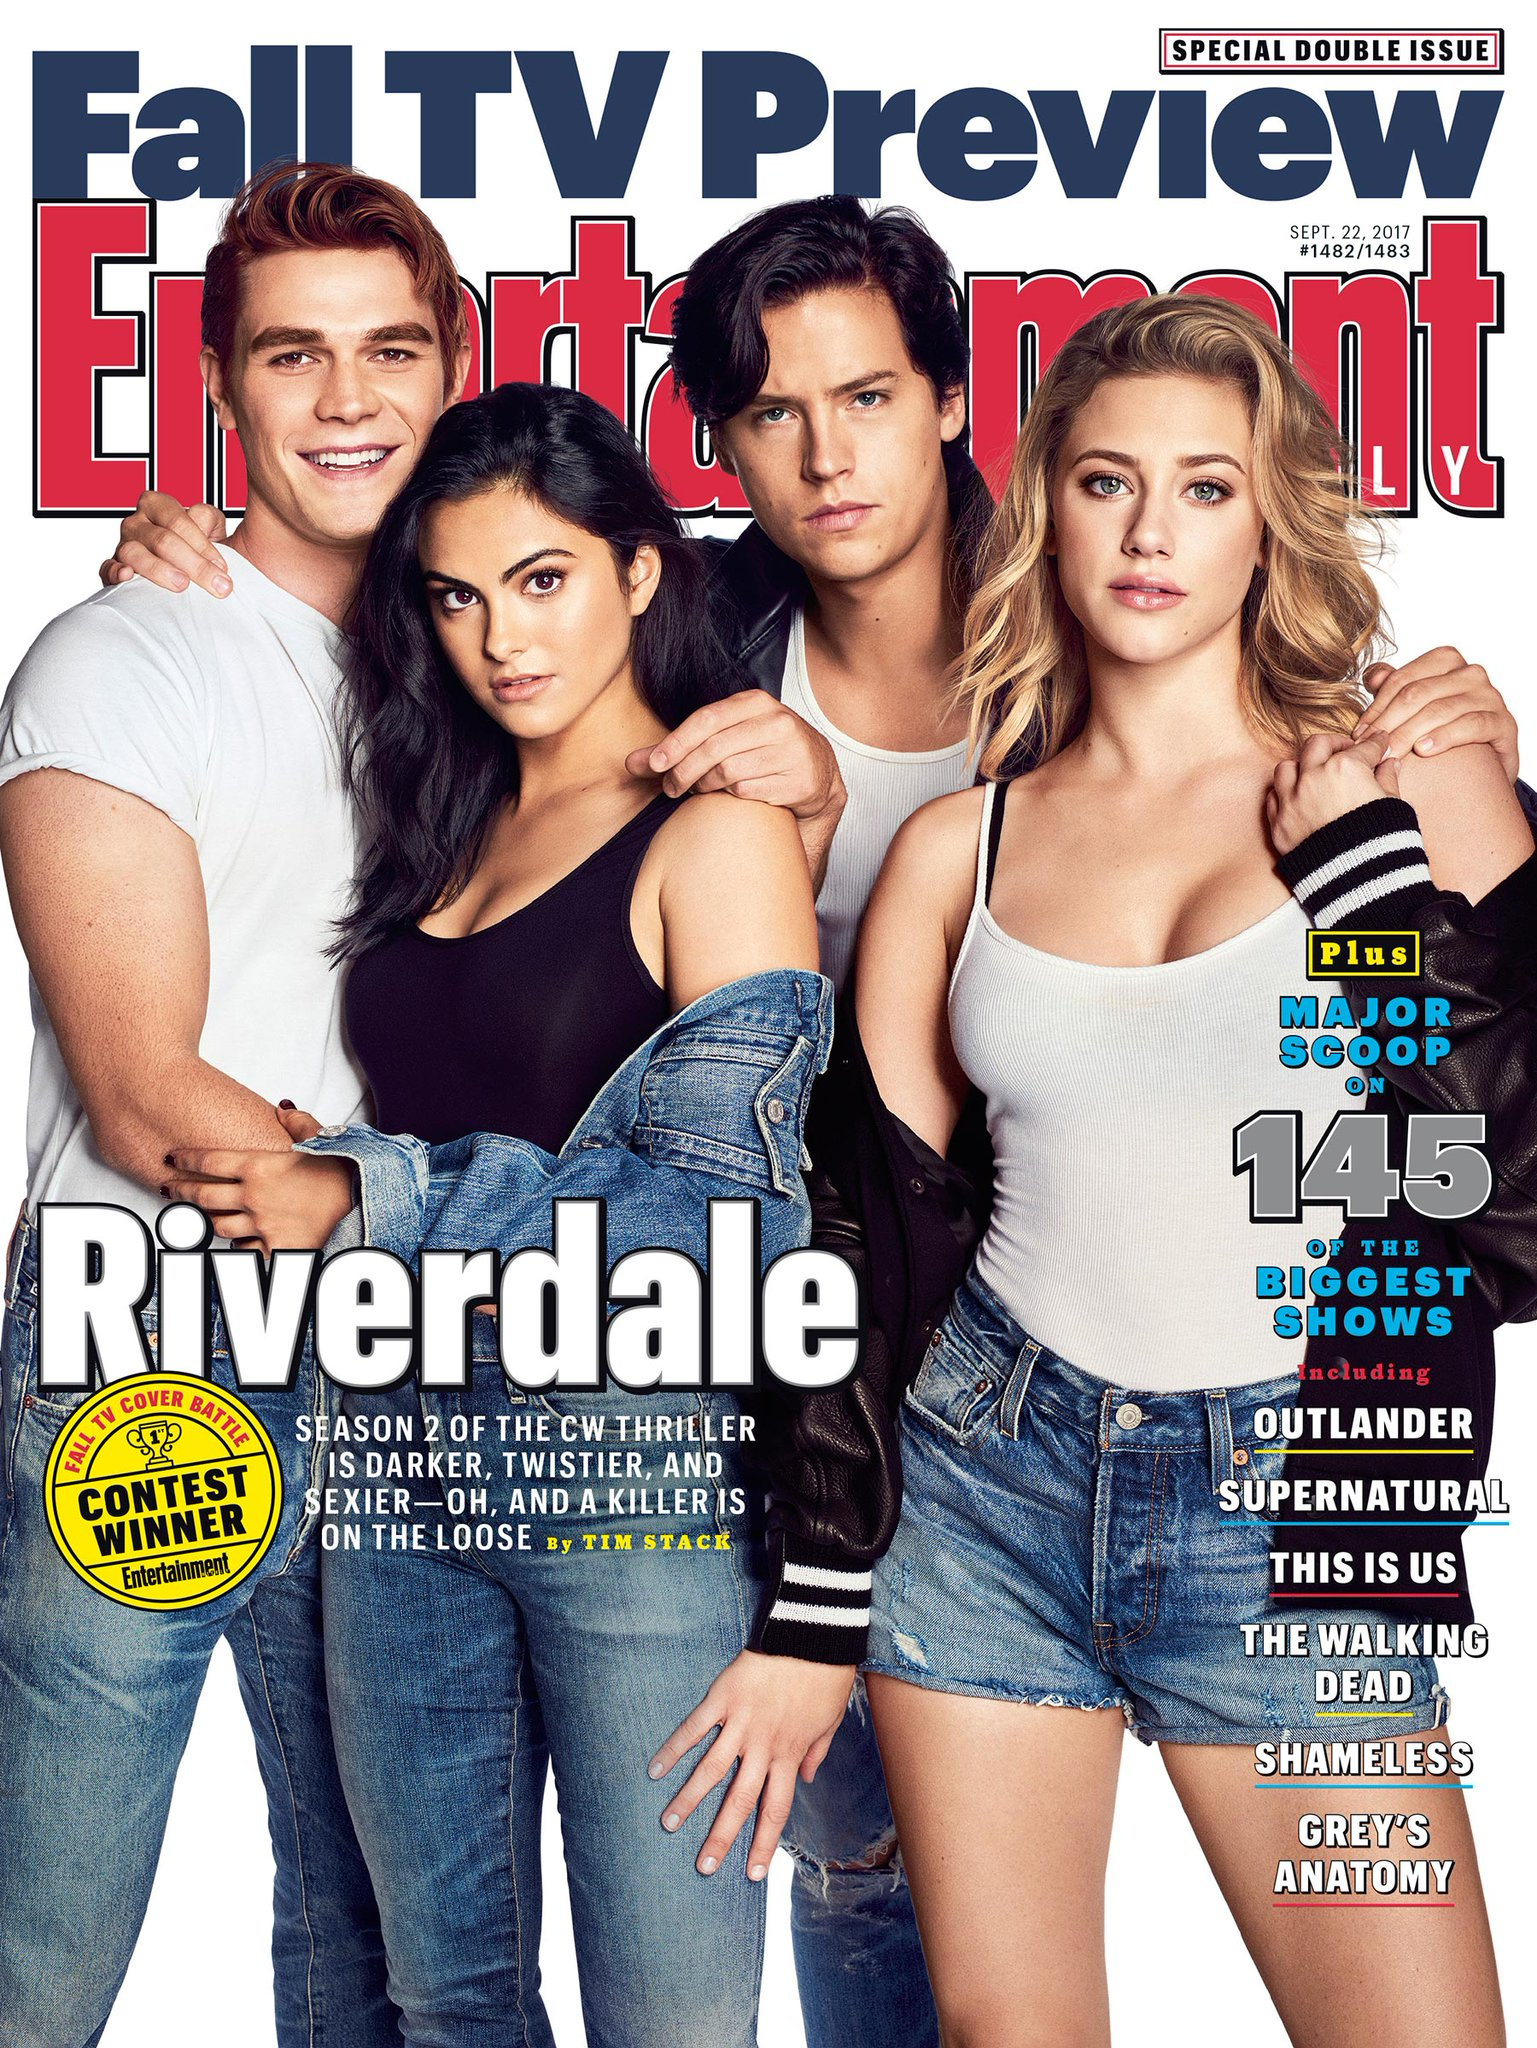 The #Riverdale gang is BACK! Get all the details on season 2 in our Fall TV Preview: https://t.co/yHLi5nI74m �� https://t.co/gNjWVKle6O